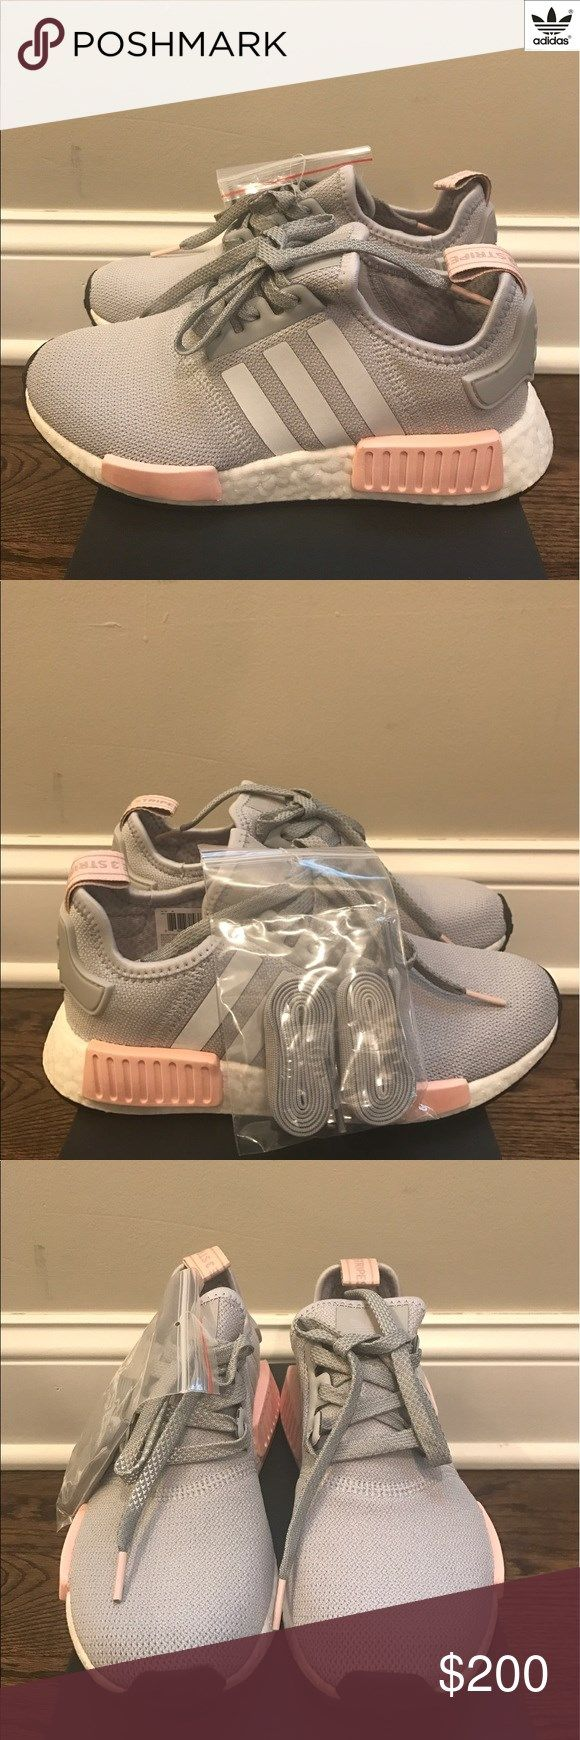 0cf6246b6c7a5 Brand New Adidas NMD R1 Women Vapour Grey Pink This listing is for Brand  New Adidas NMD Womens in Vapour Grey Pink color way. These are 100% brand  new and ...